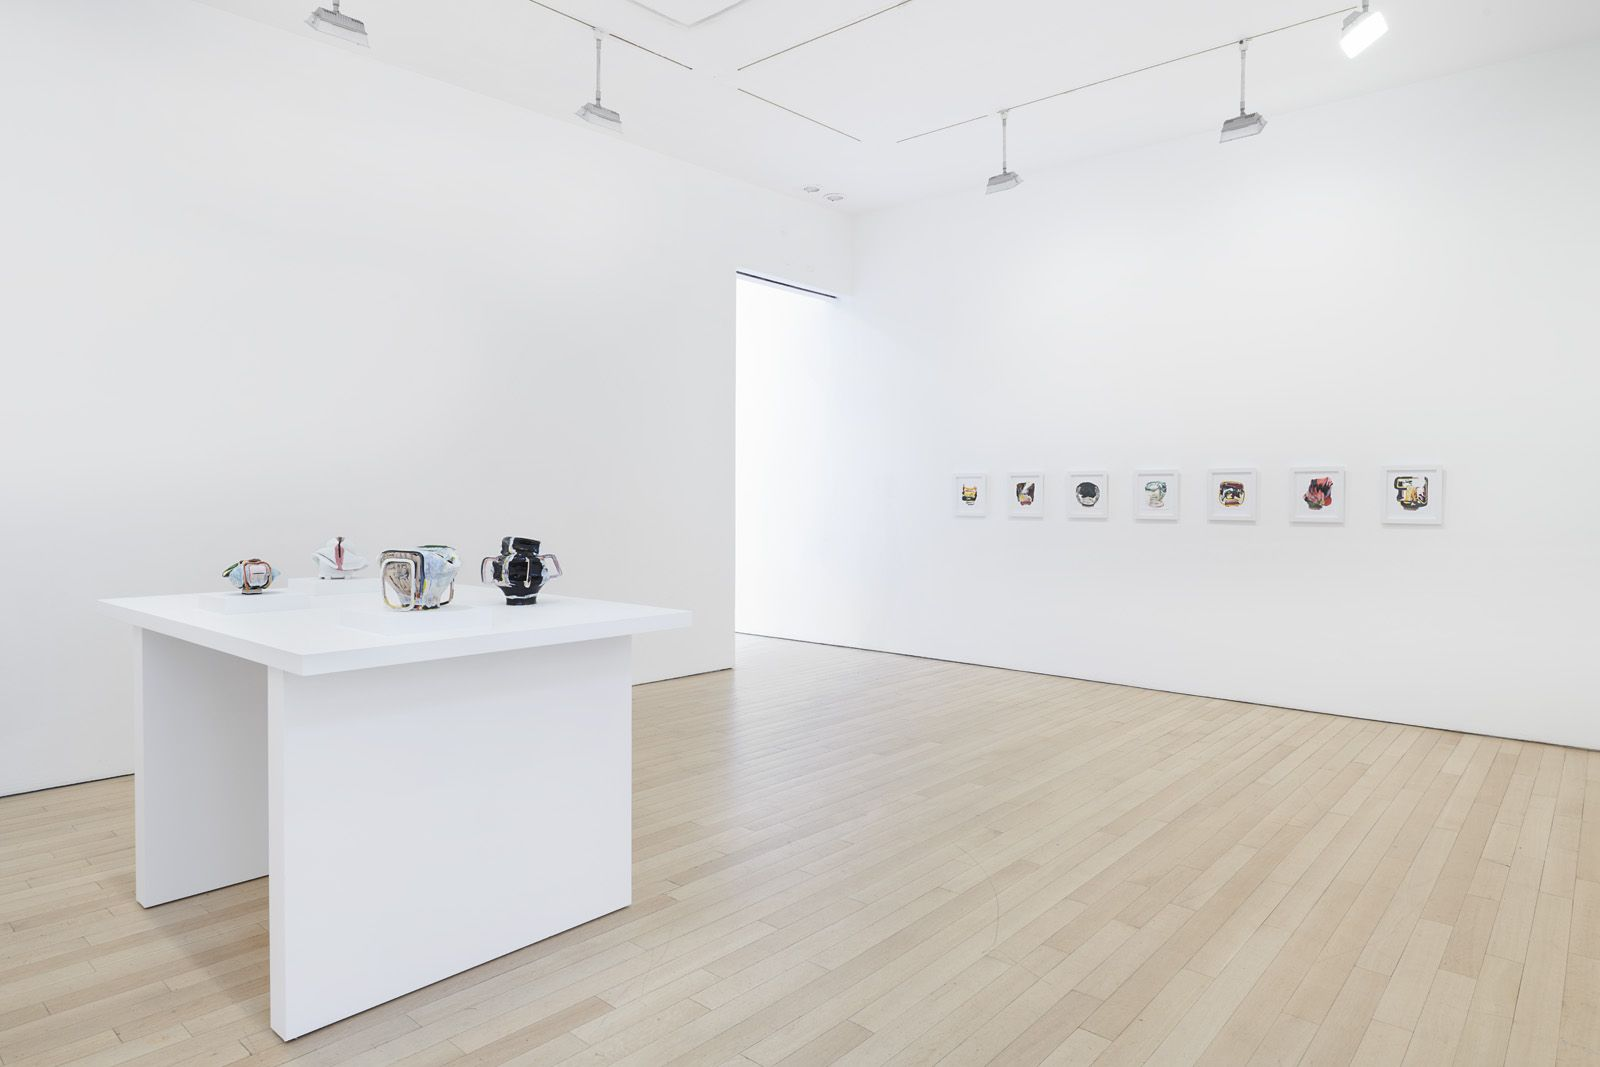 Installation View, Chelsea, 2018.